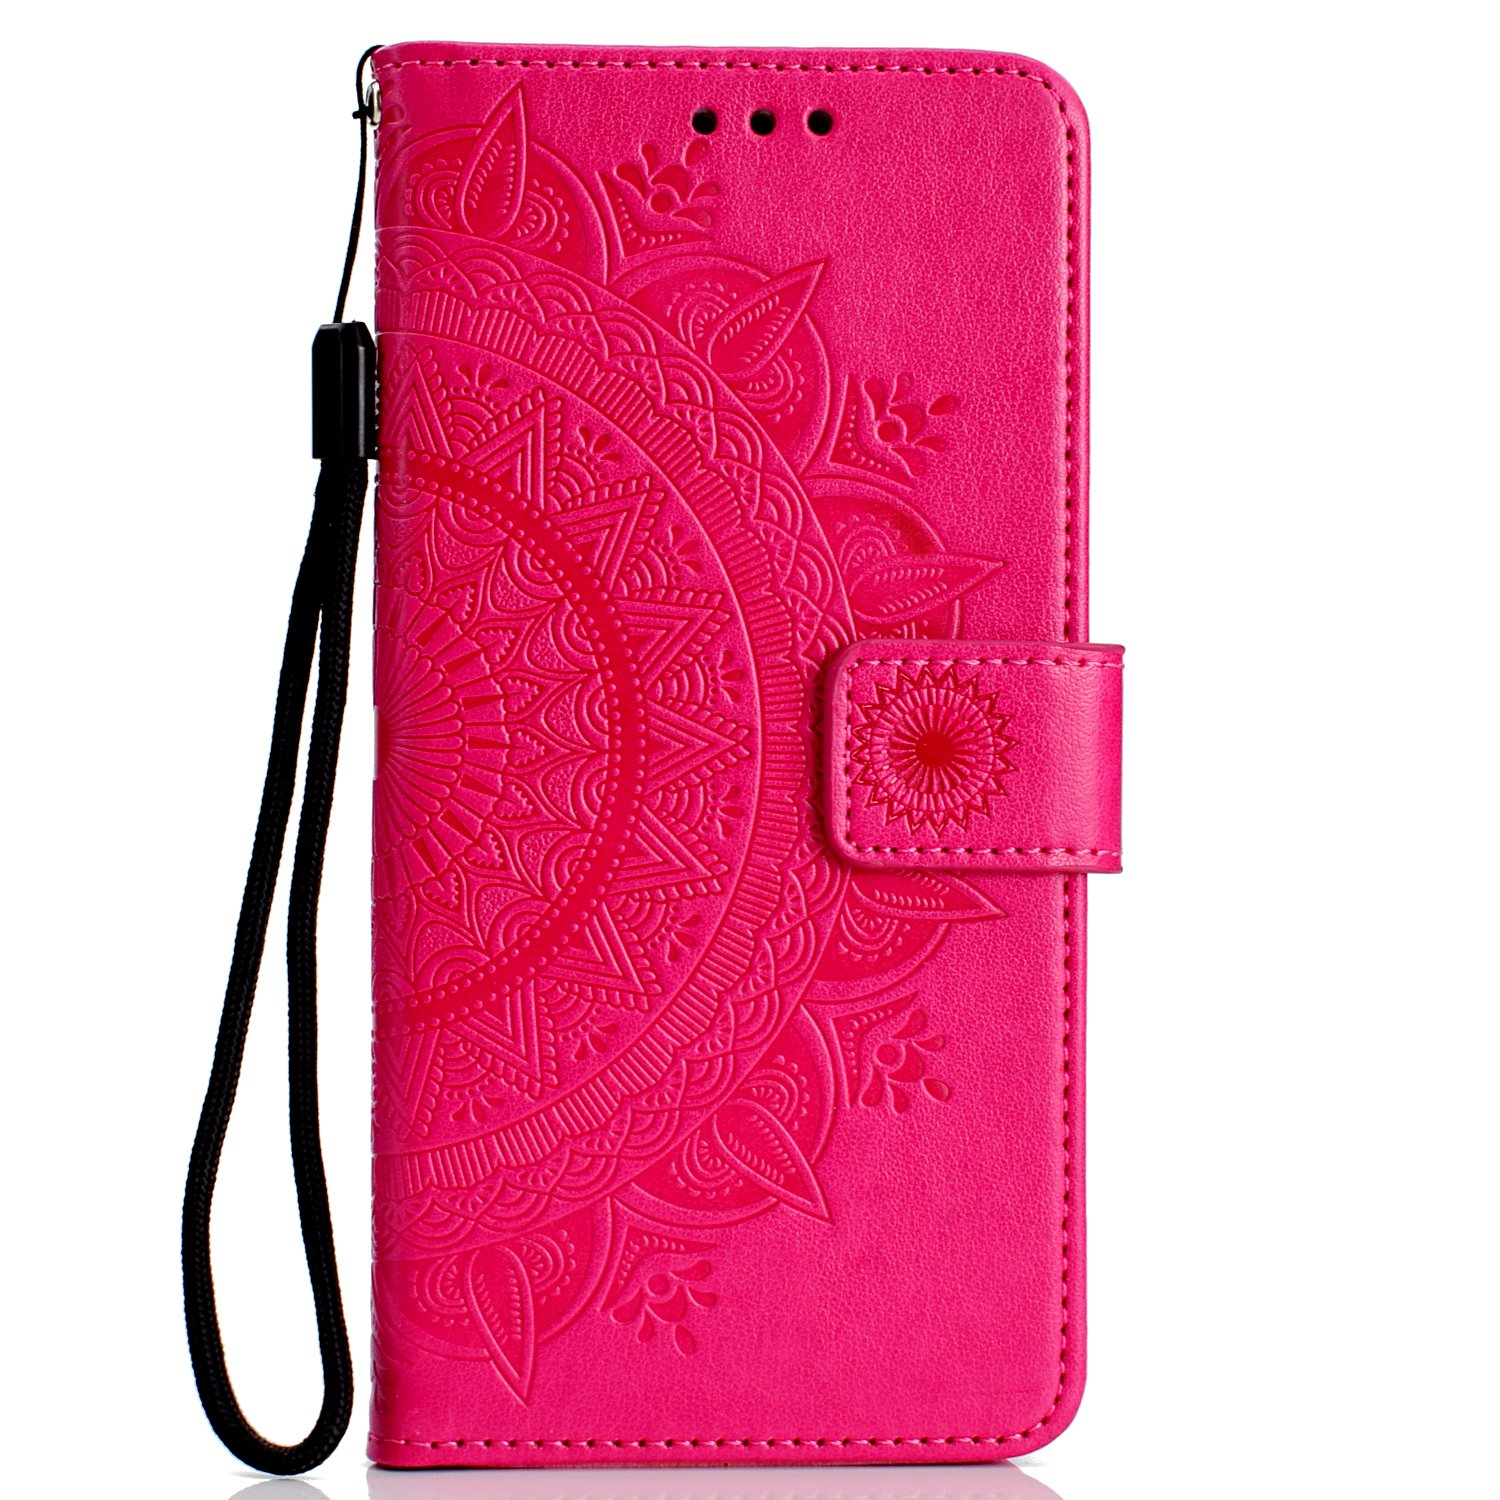 NEXCURIO iPhone XR Wallet Case with Card Holder Folding Kickstand Leather Case Flip Cover for Apple iPhone XR - NEHHA11310 Rose Gold